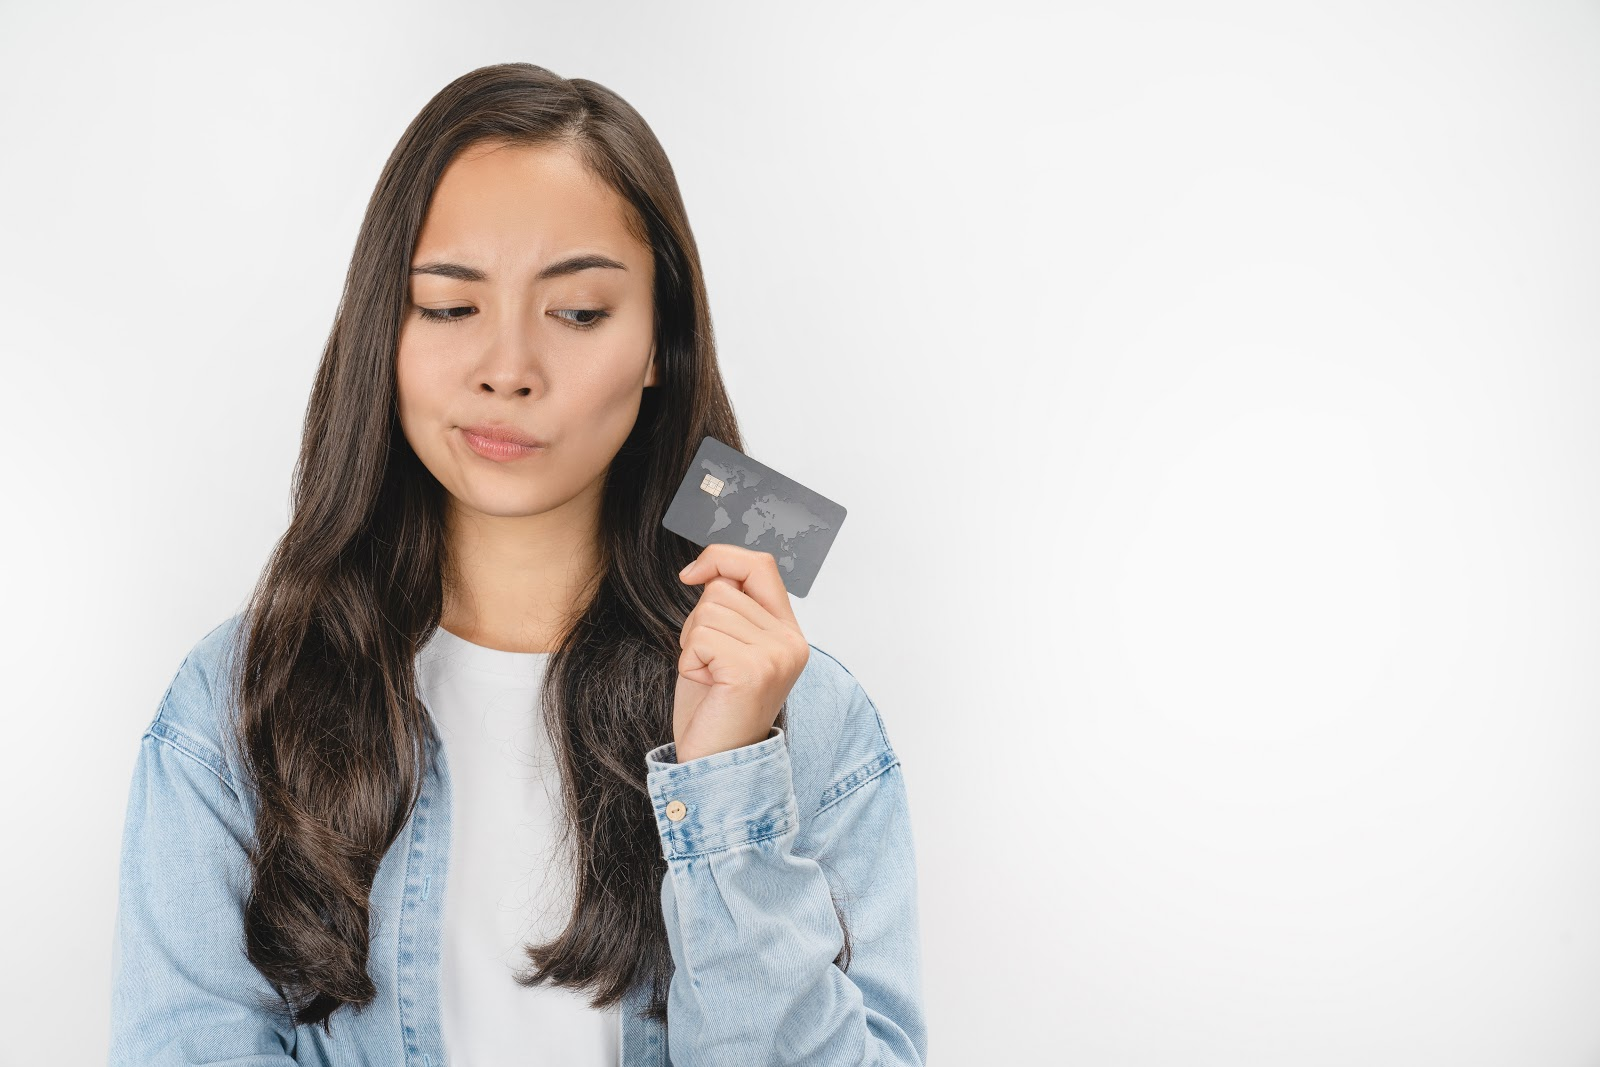 Woman holding a credit card